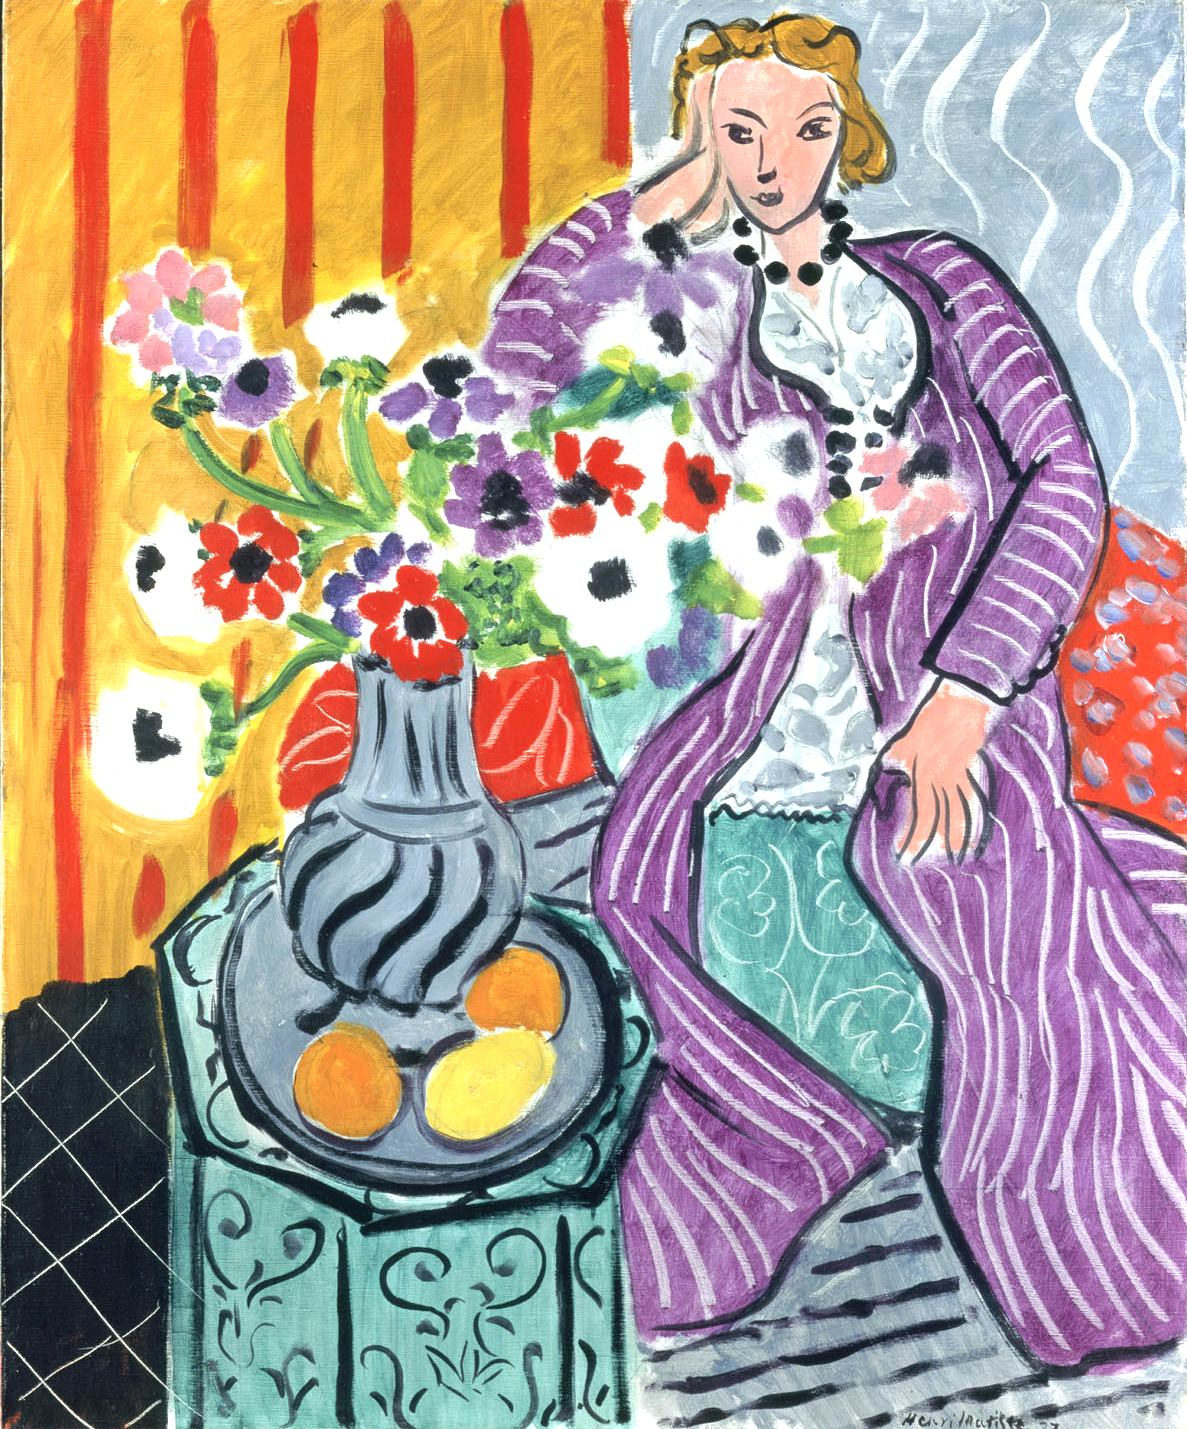 The provence post nice celebrates matisse until september 23 for Artistic mural works